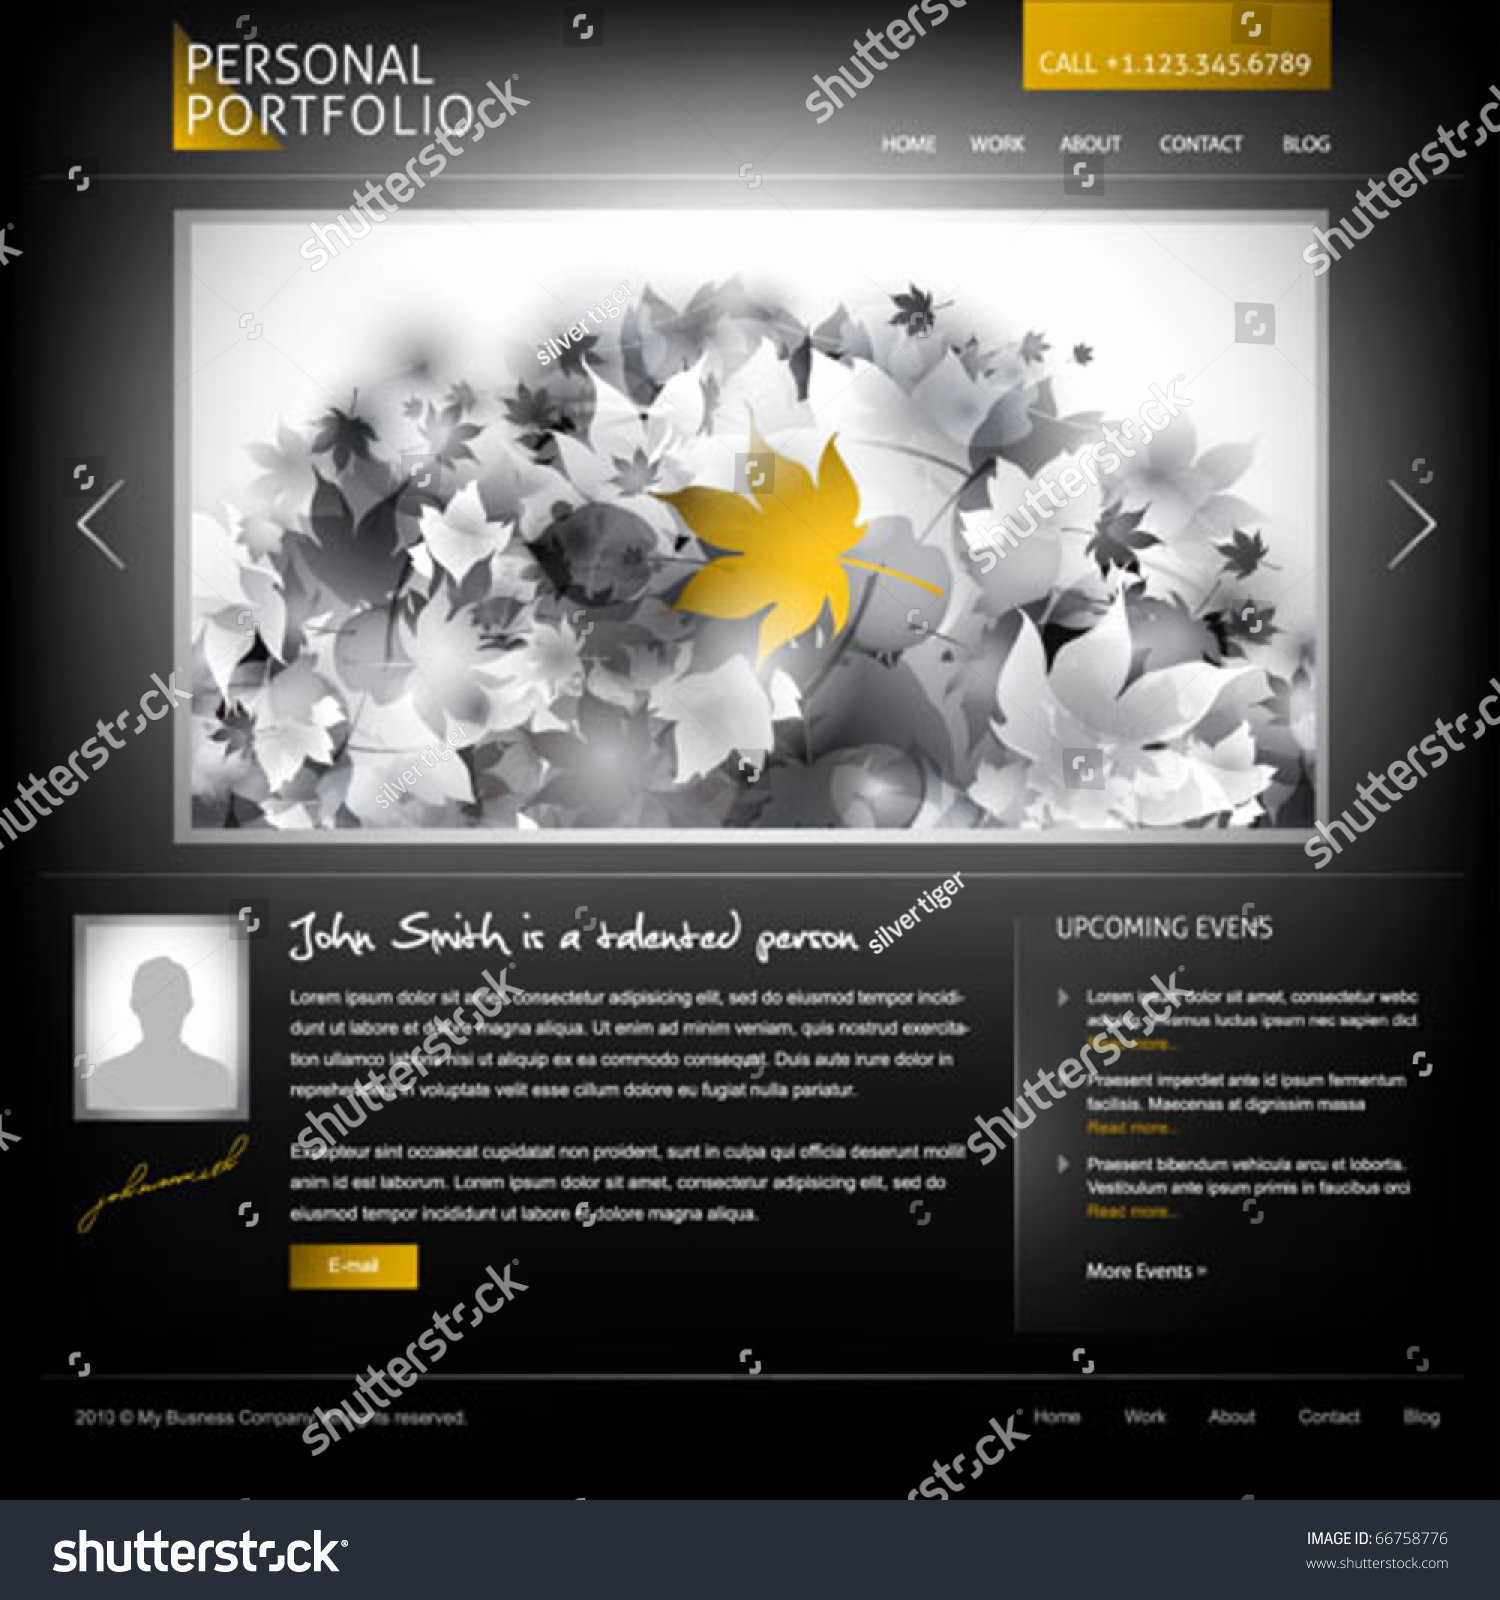 Black Stylish Website Template for Personal Portfolio